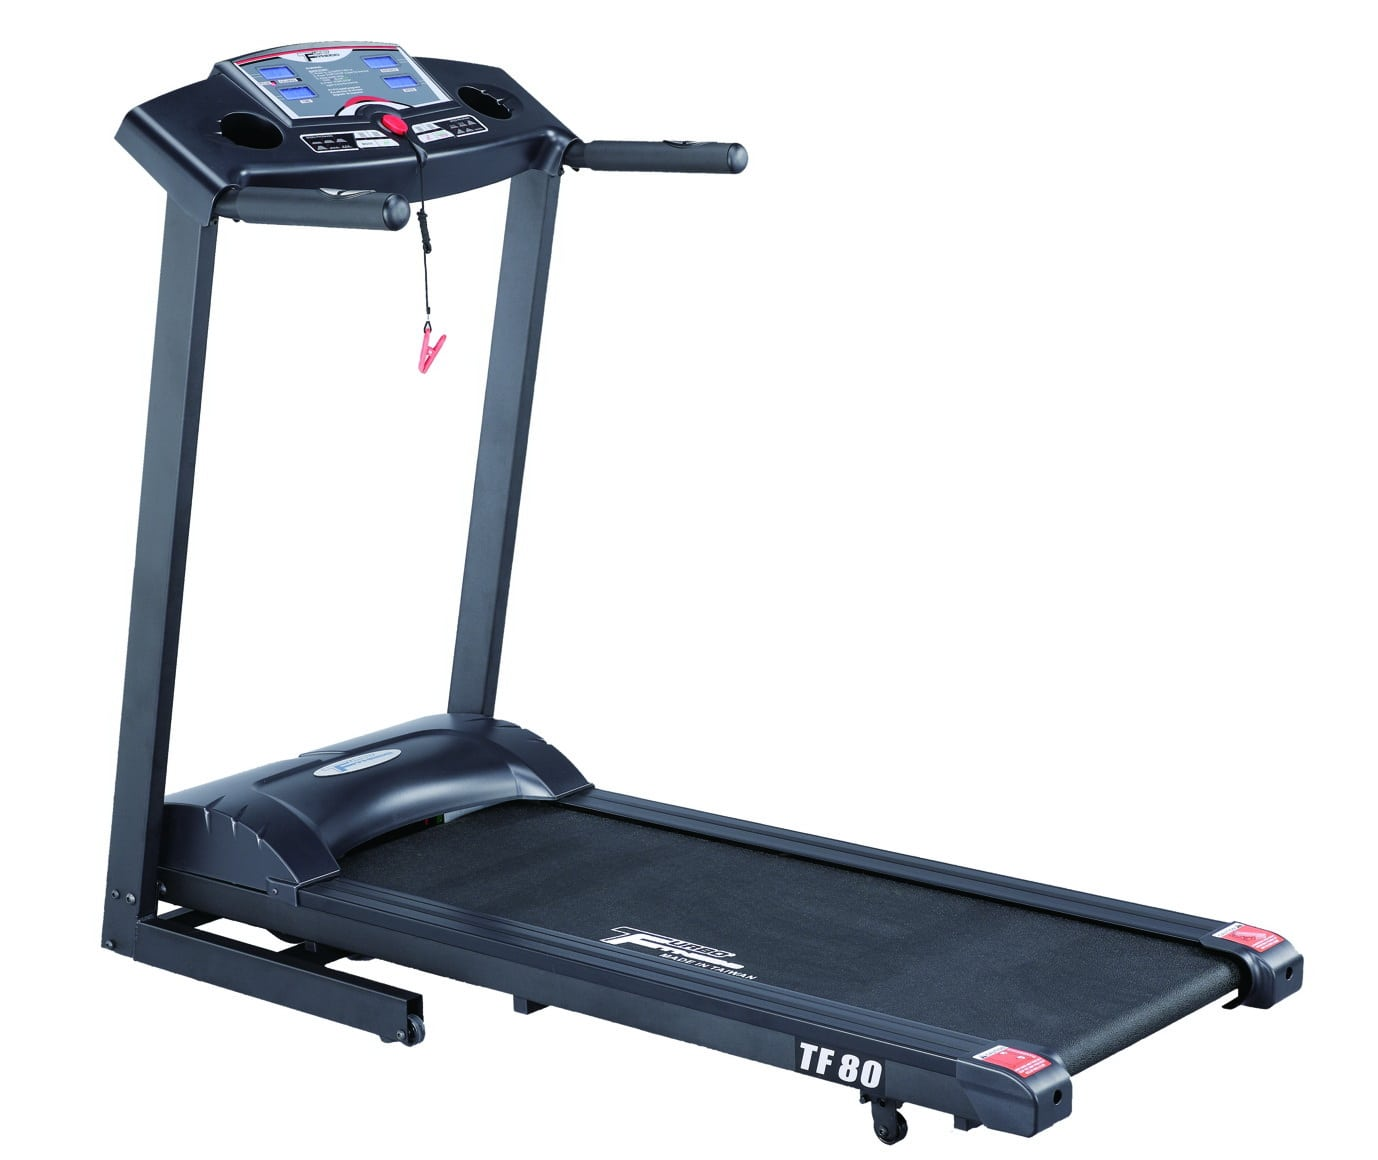 TurboFitness 80 treadmills